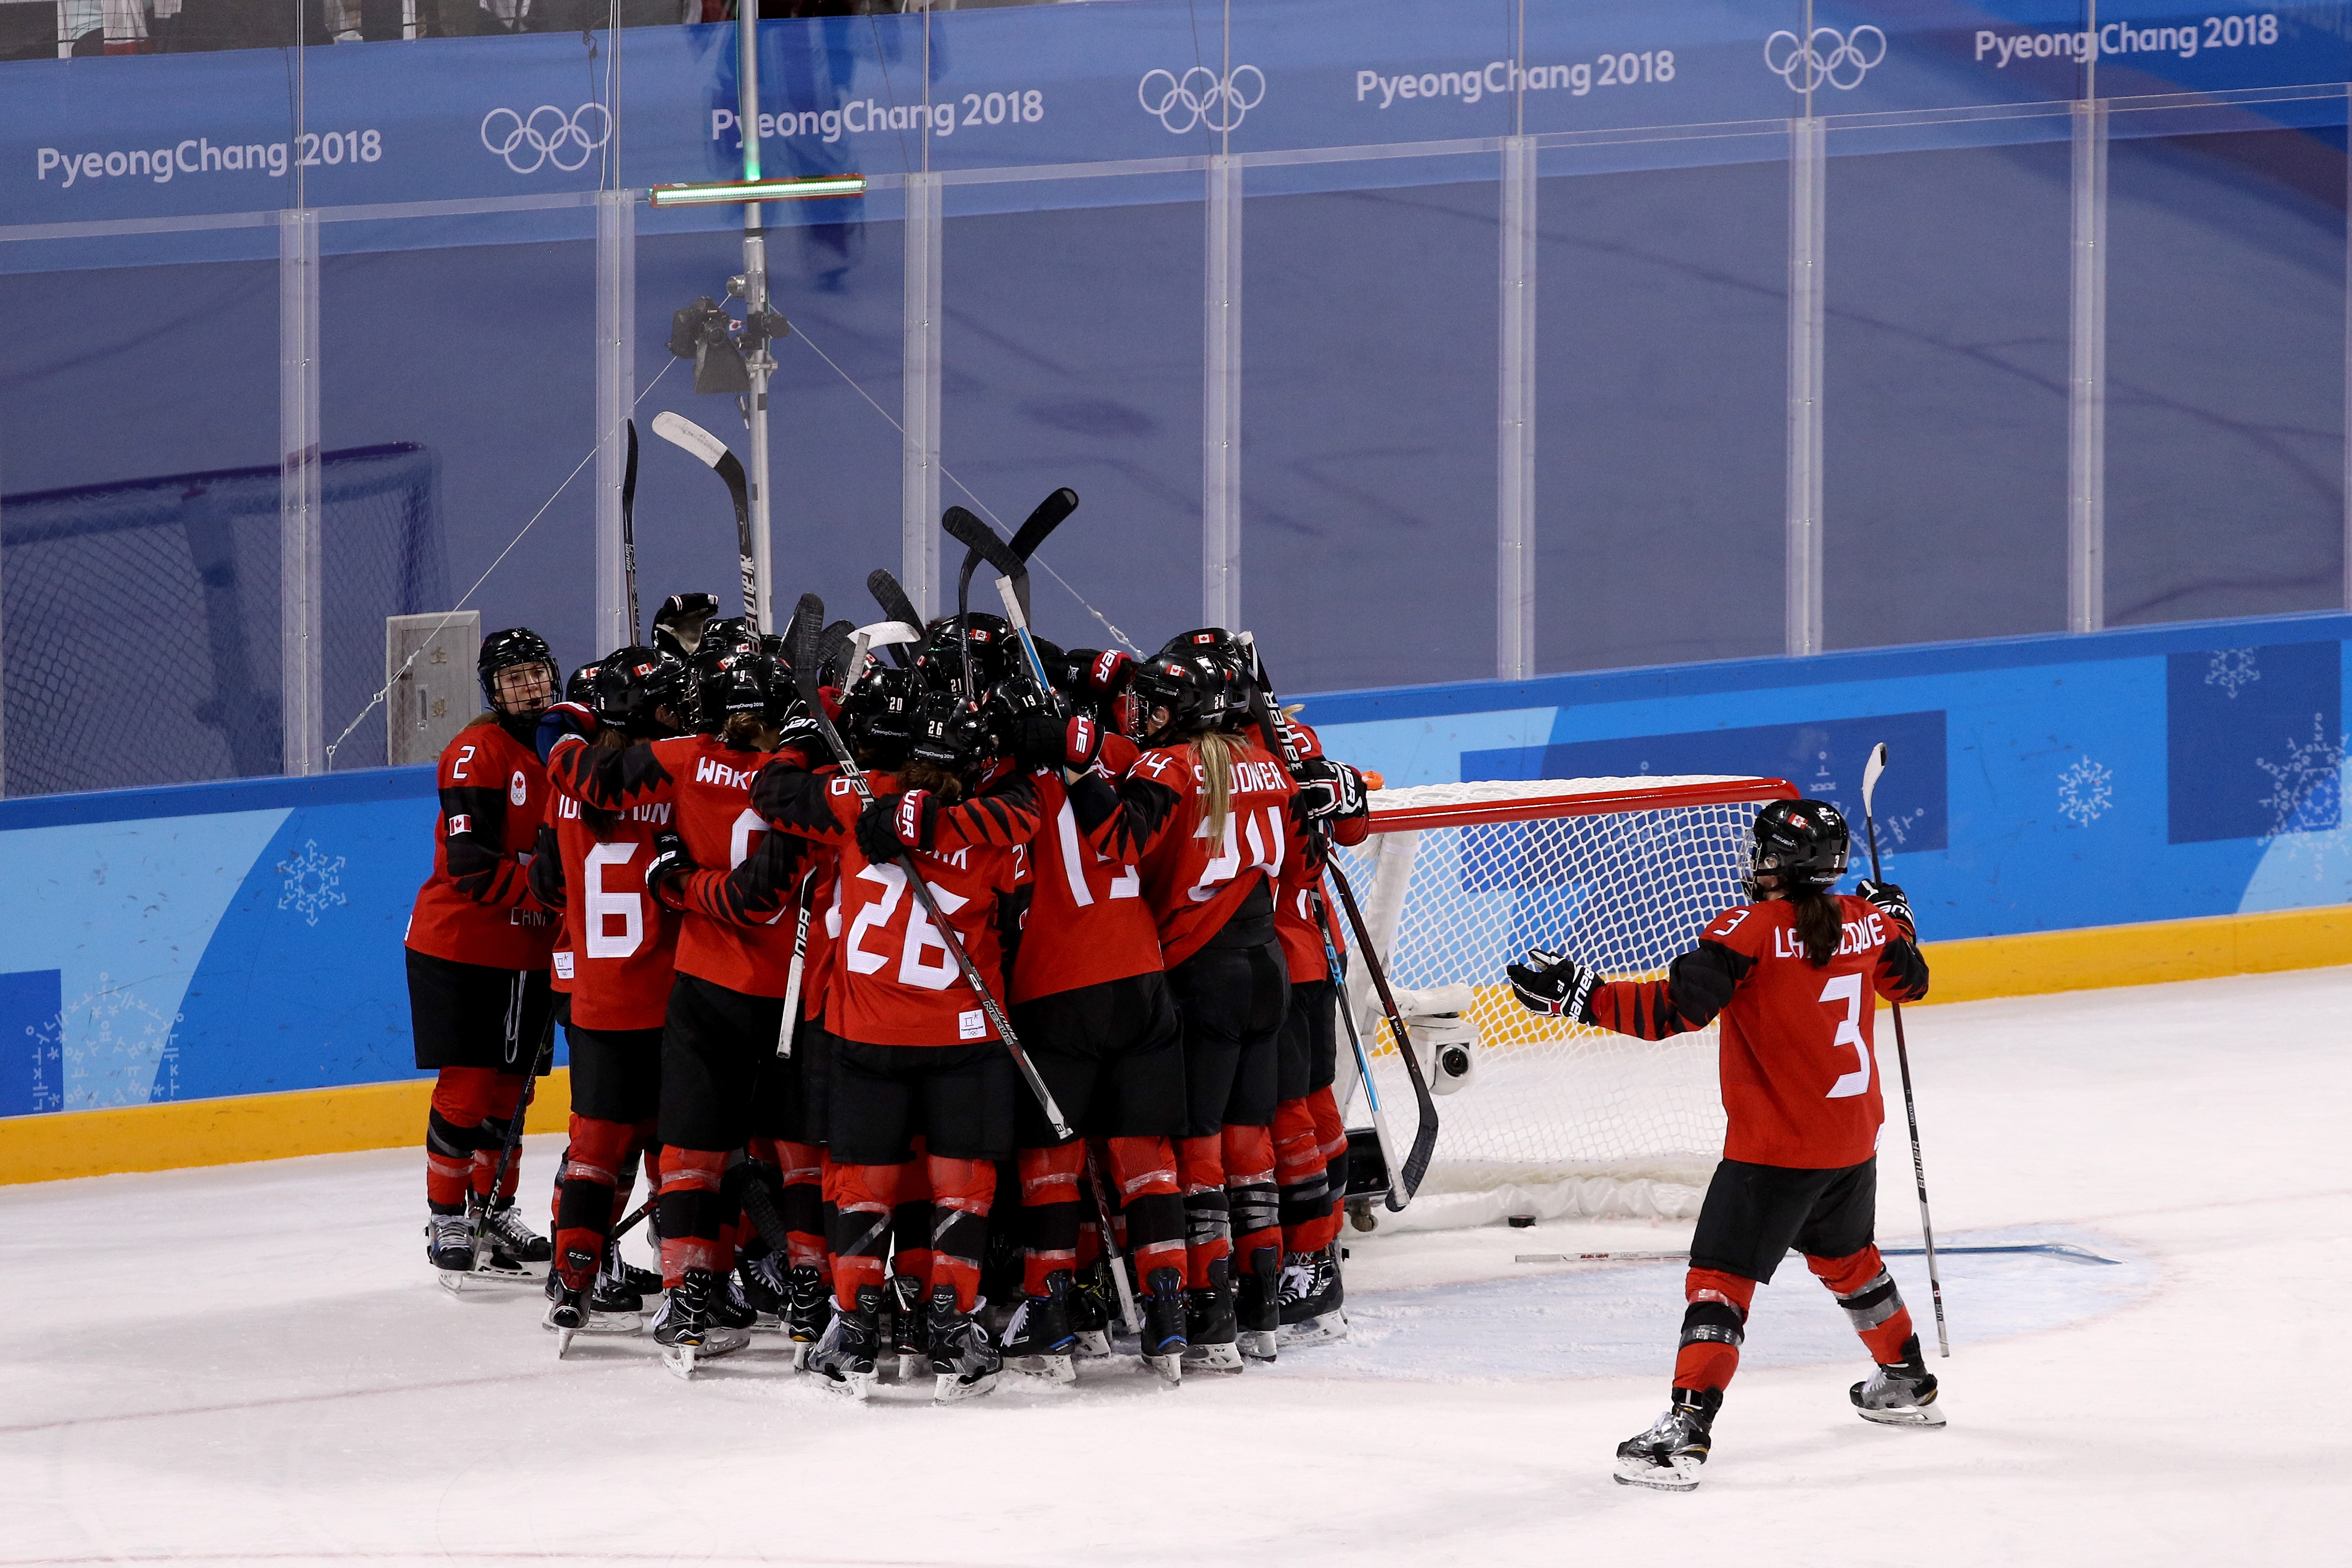 Canada celebrates after defeating the United States 2-1 during the Women's Ice Hockey Preliminary Round Group A game on day six of the PyeongChang 2018 Winter Olympic Games at Kwandong Hockey Centre on February 15, 2018 in Gangneung, South Korea.